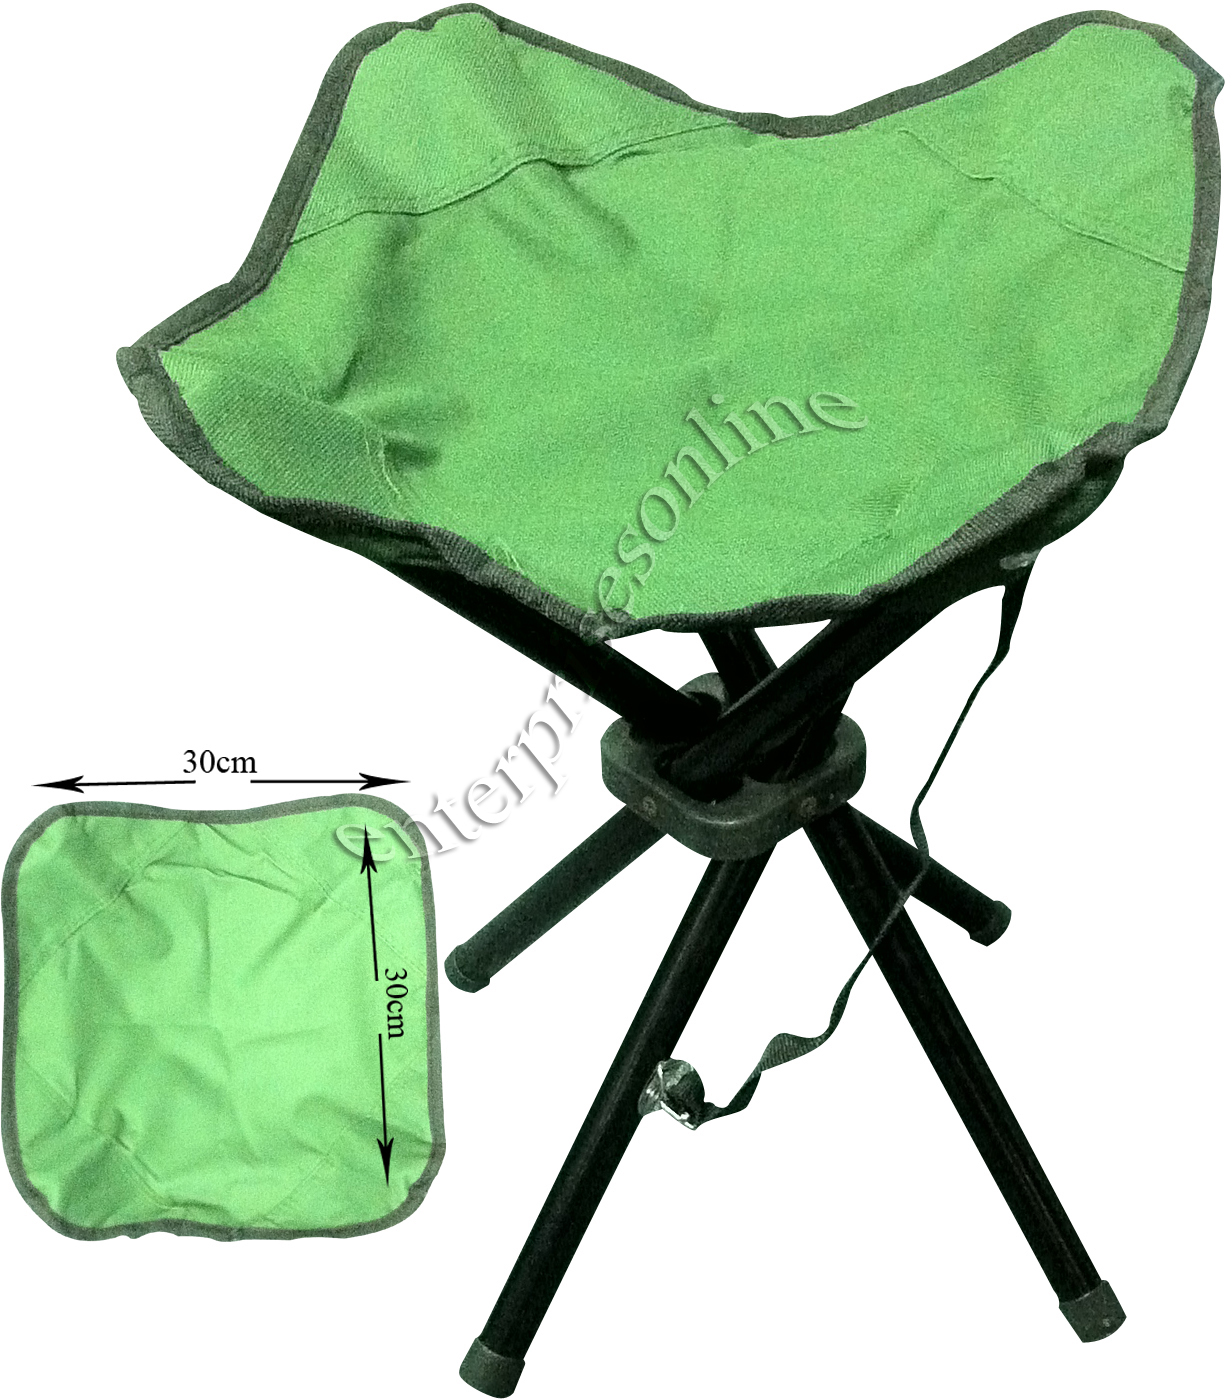 Hiking Chairs 4 Legs Portable Folding Camping Stool Chair Seat Hiking